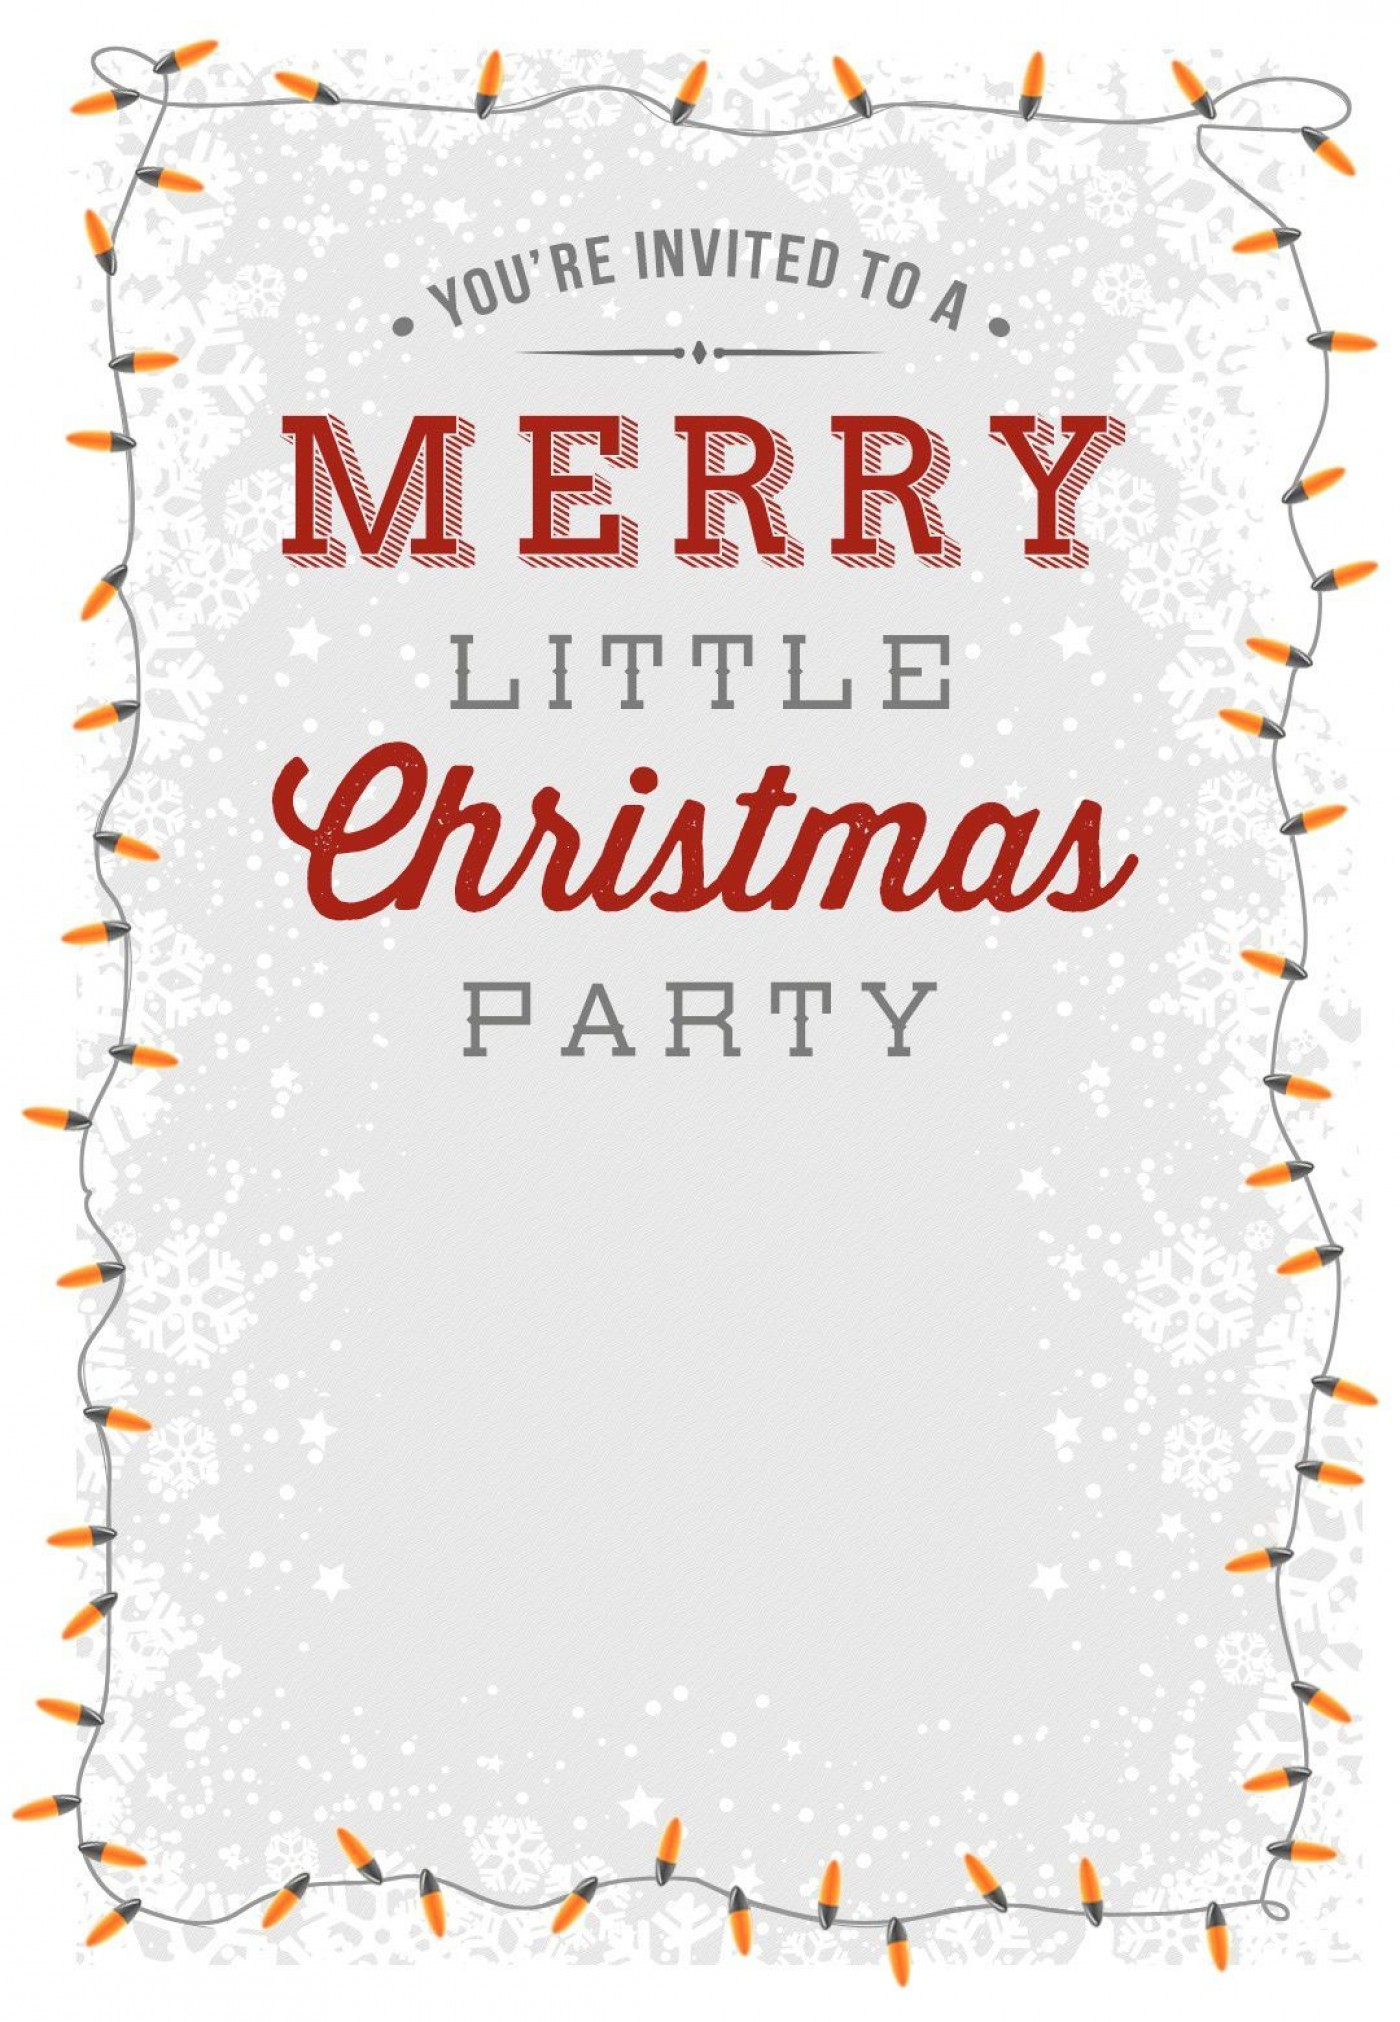 006 Formidable Xma Party Invite Template Free Example  Holiday Invitation Word Download Christma1400